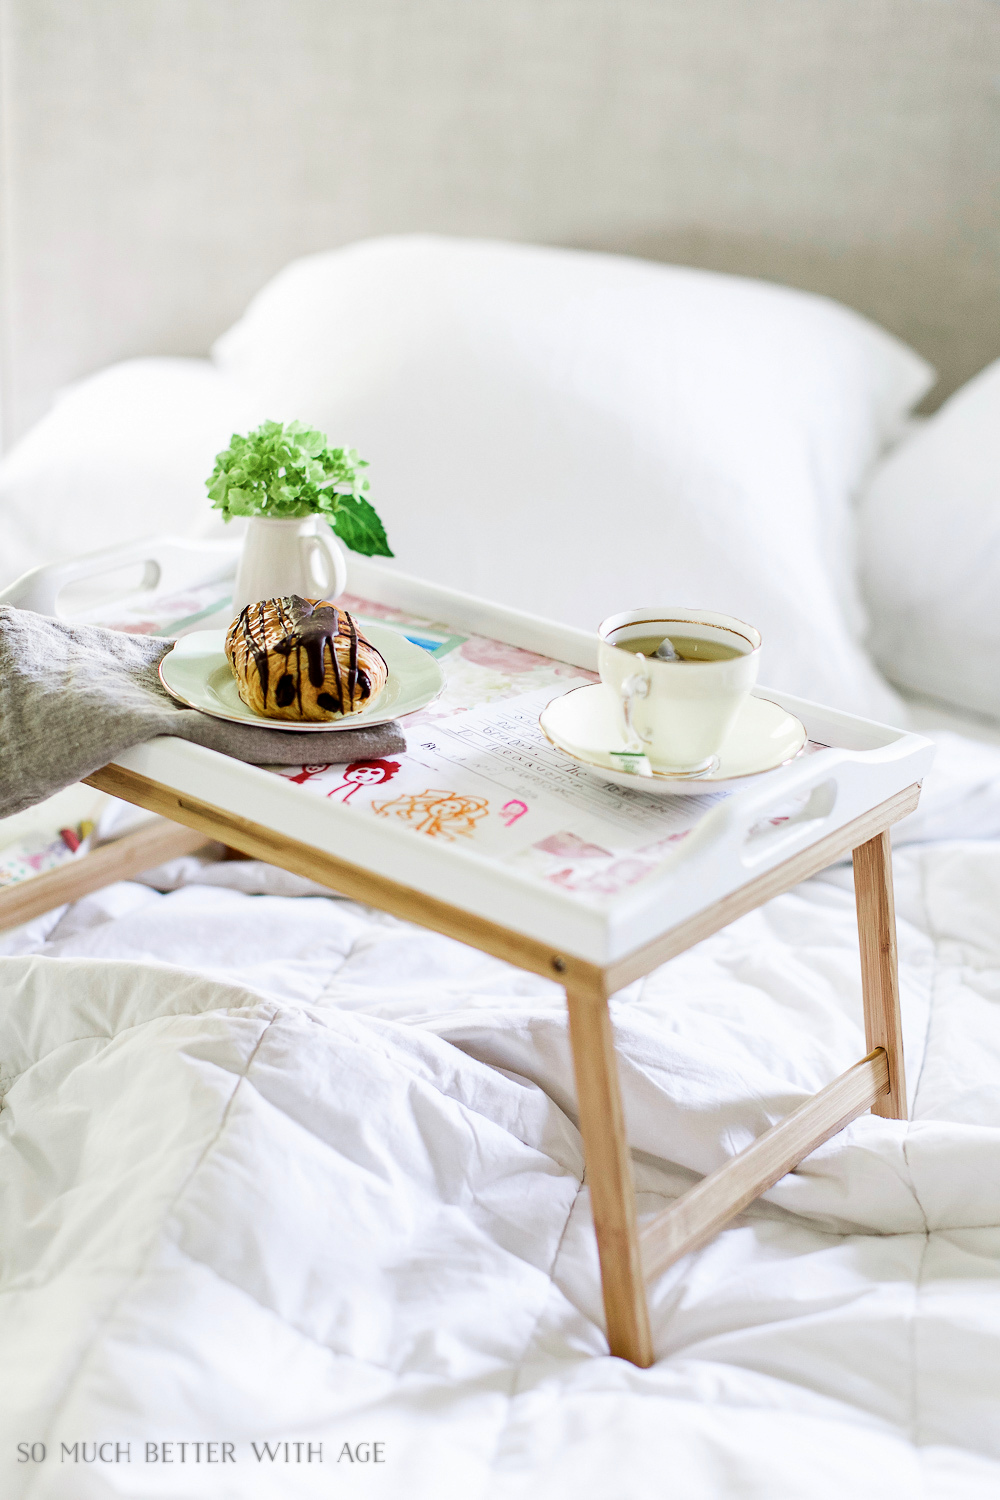 Decoupaged kid's art breakfast-in-bed tray by So Much Better With Age, featured on Funky Junk Interiors